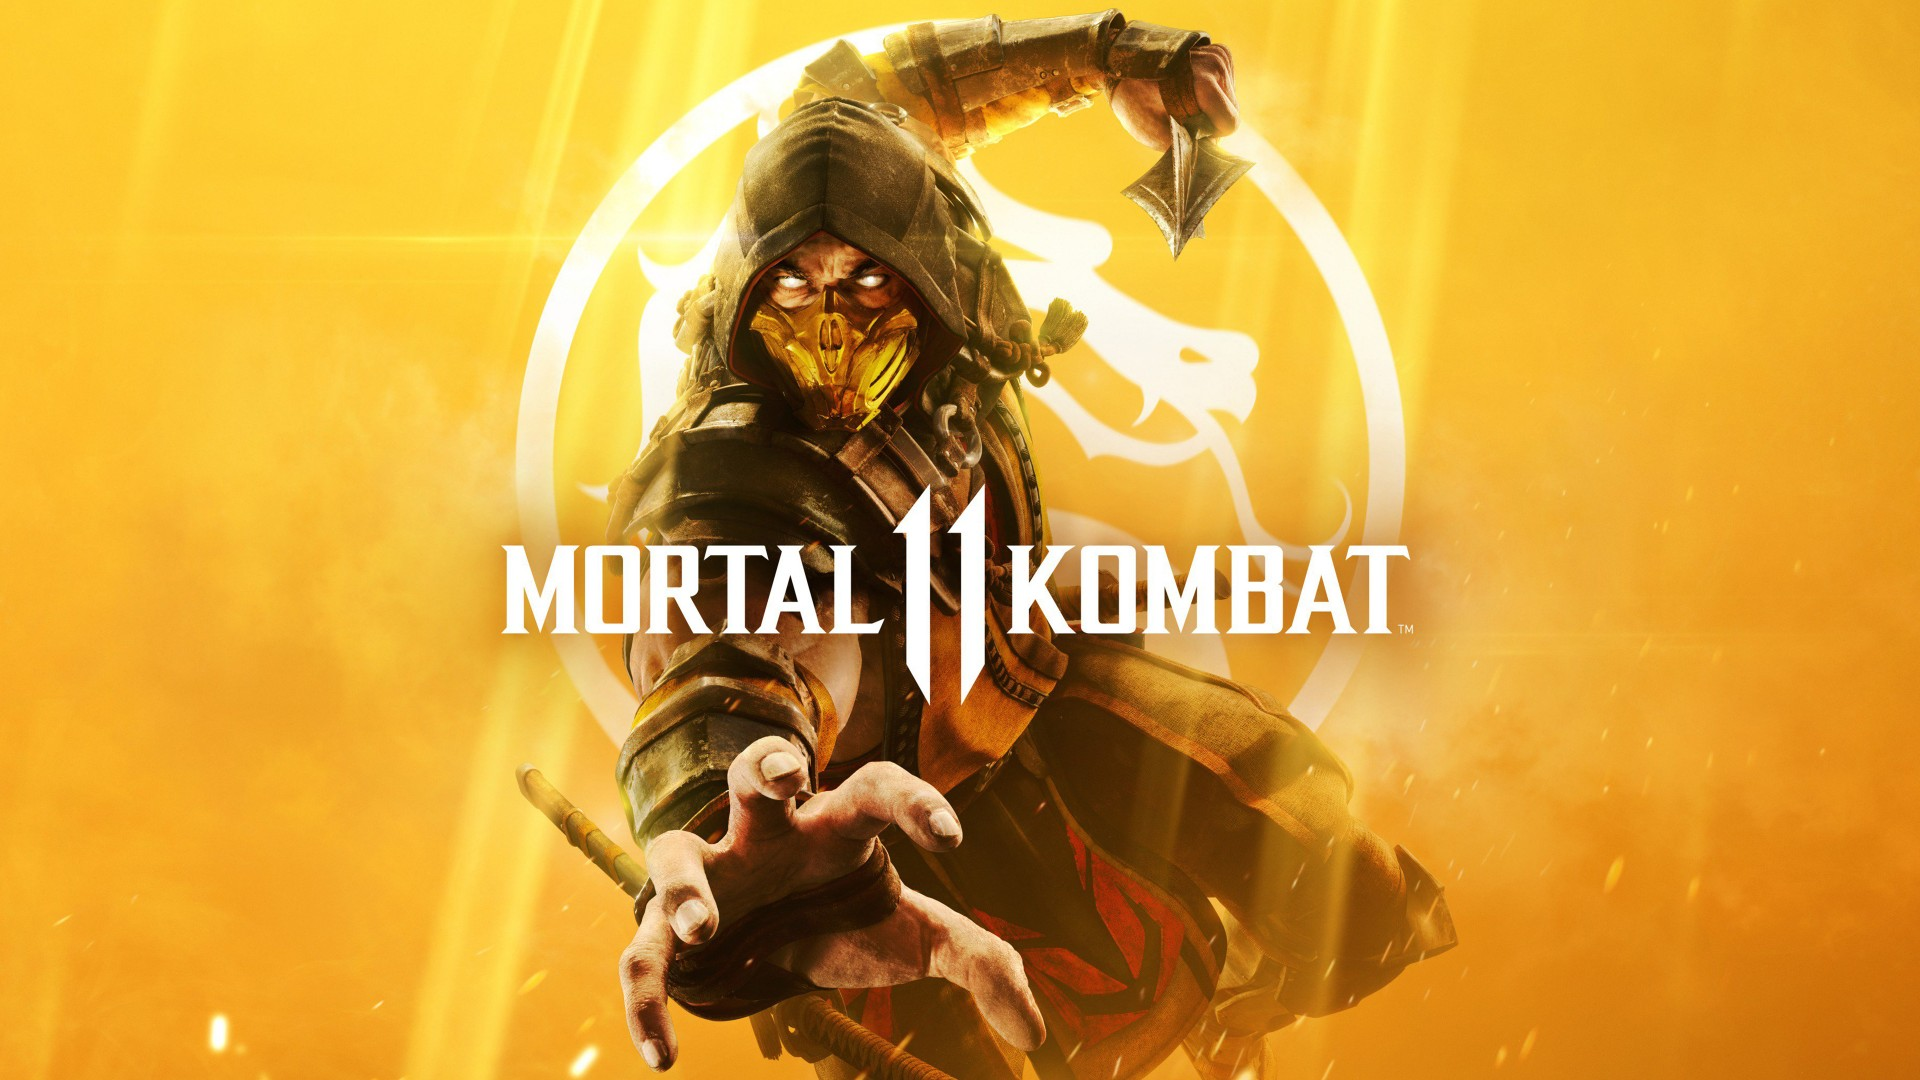 Download Cute Wallpapers For Android Mortal Kombat 11 Cover Art 4k Wallpapers Hd Wallpapers